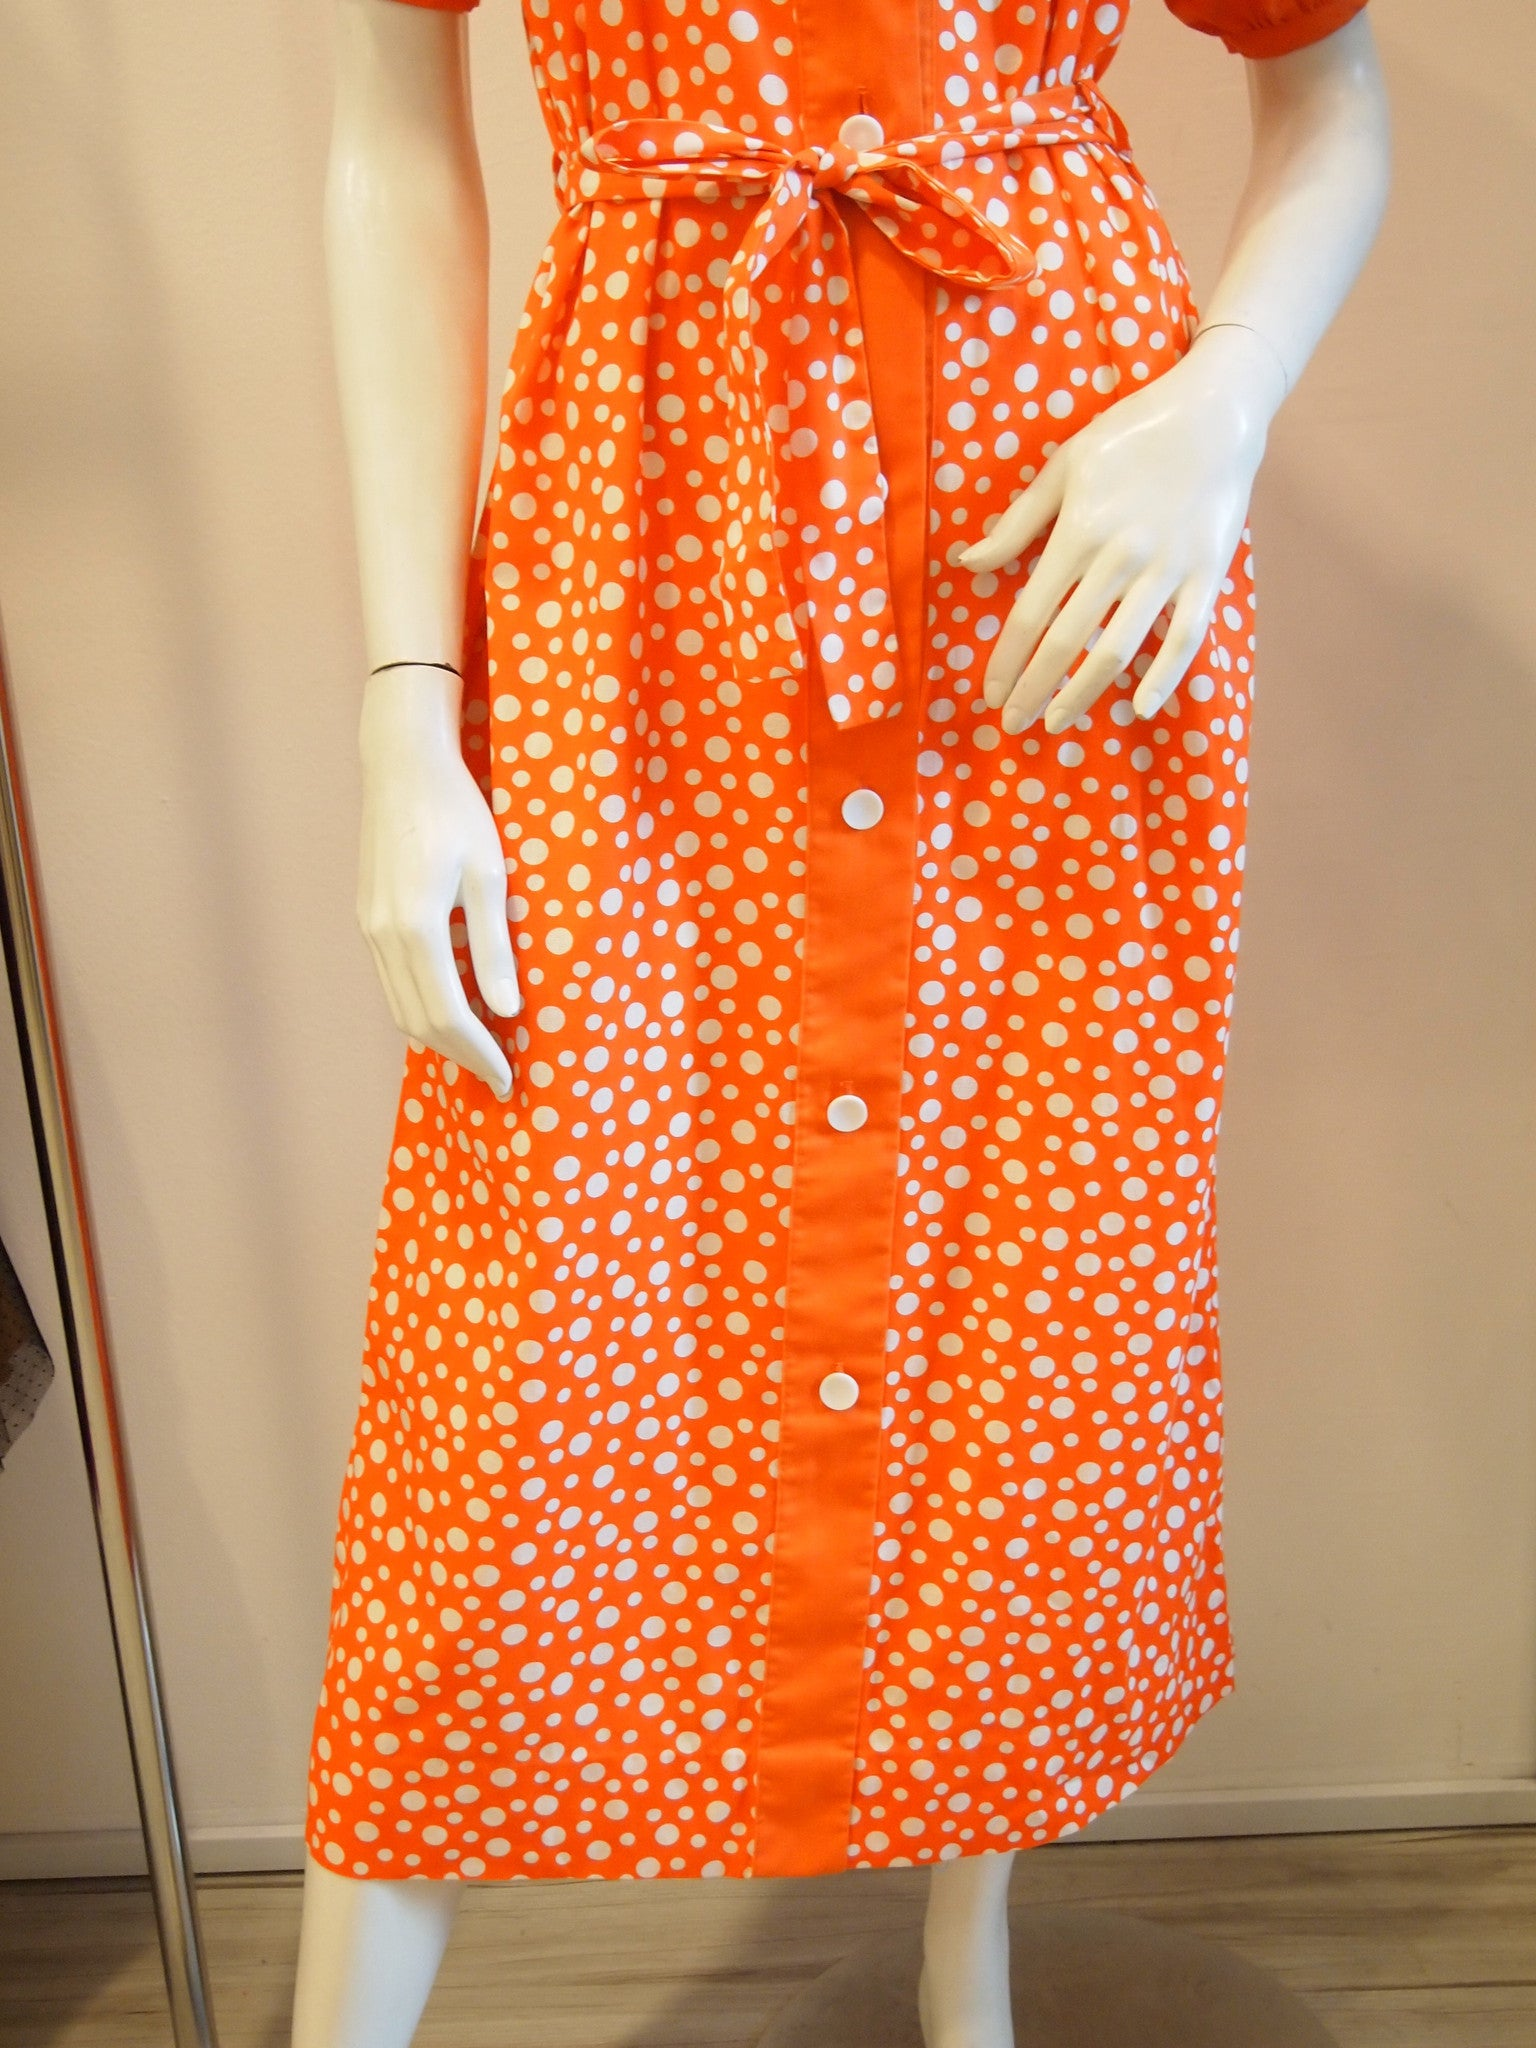 Bubbling Tangerine Polka Dots Vintage Dress